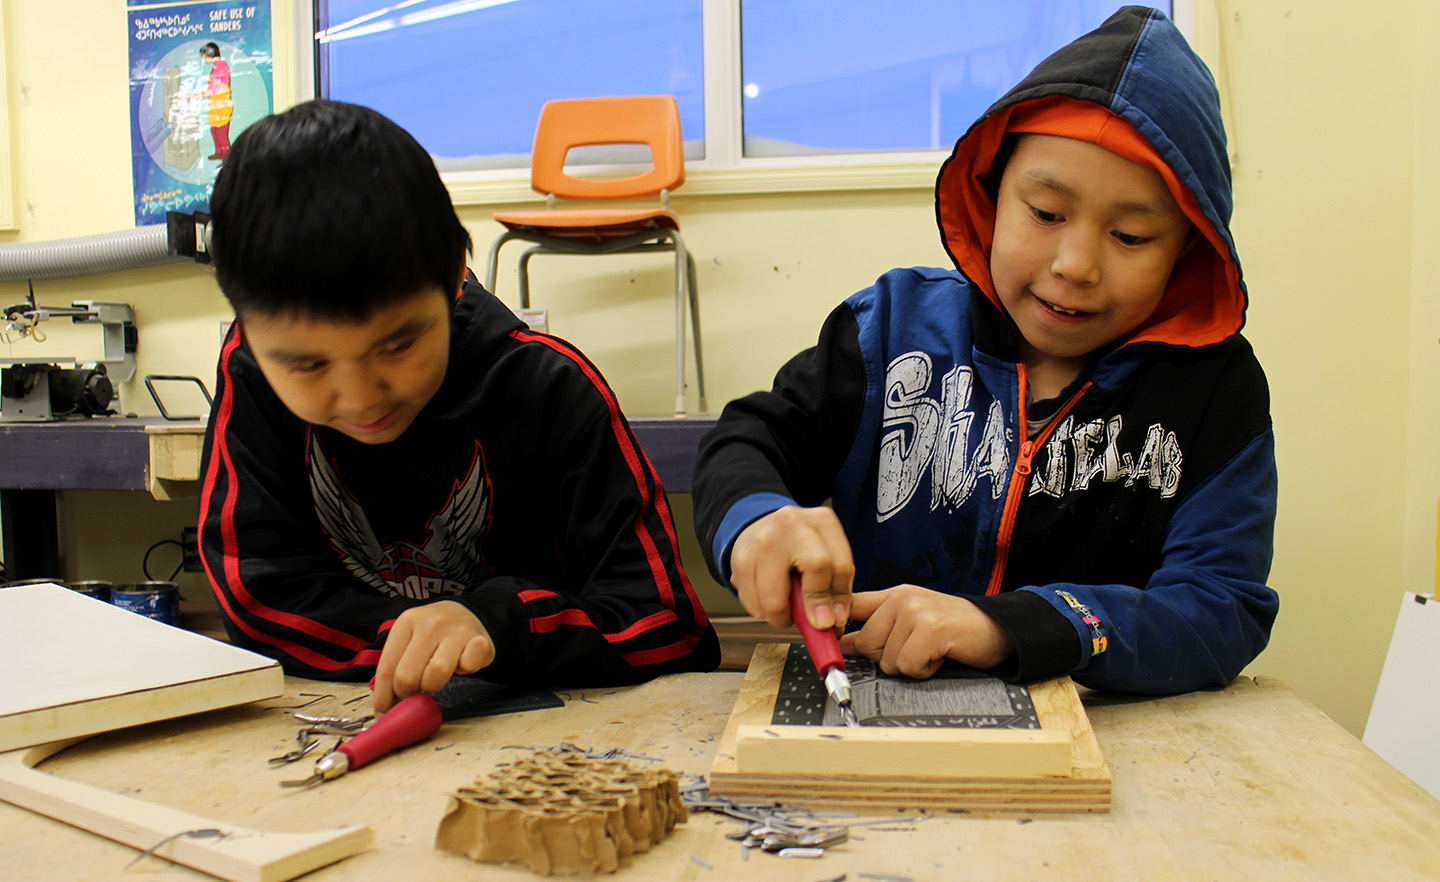 Saaki and Tommy carving lino blocks